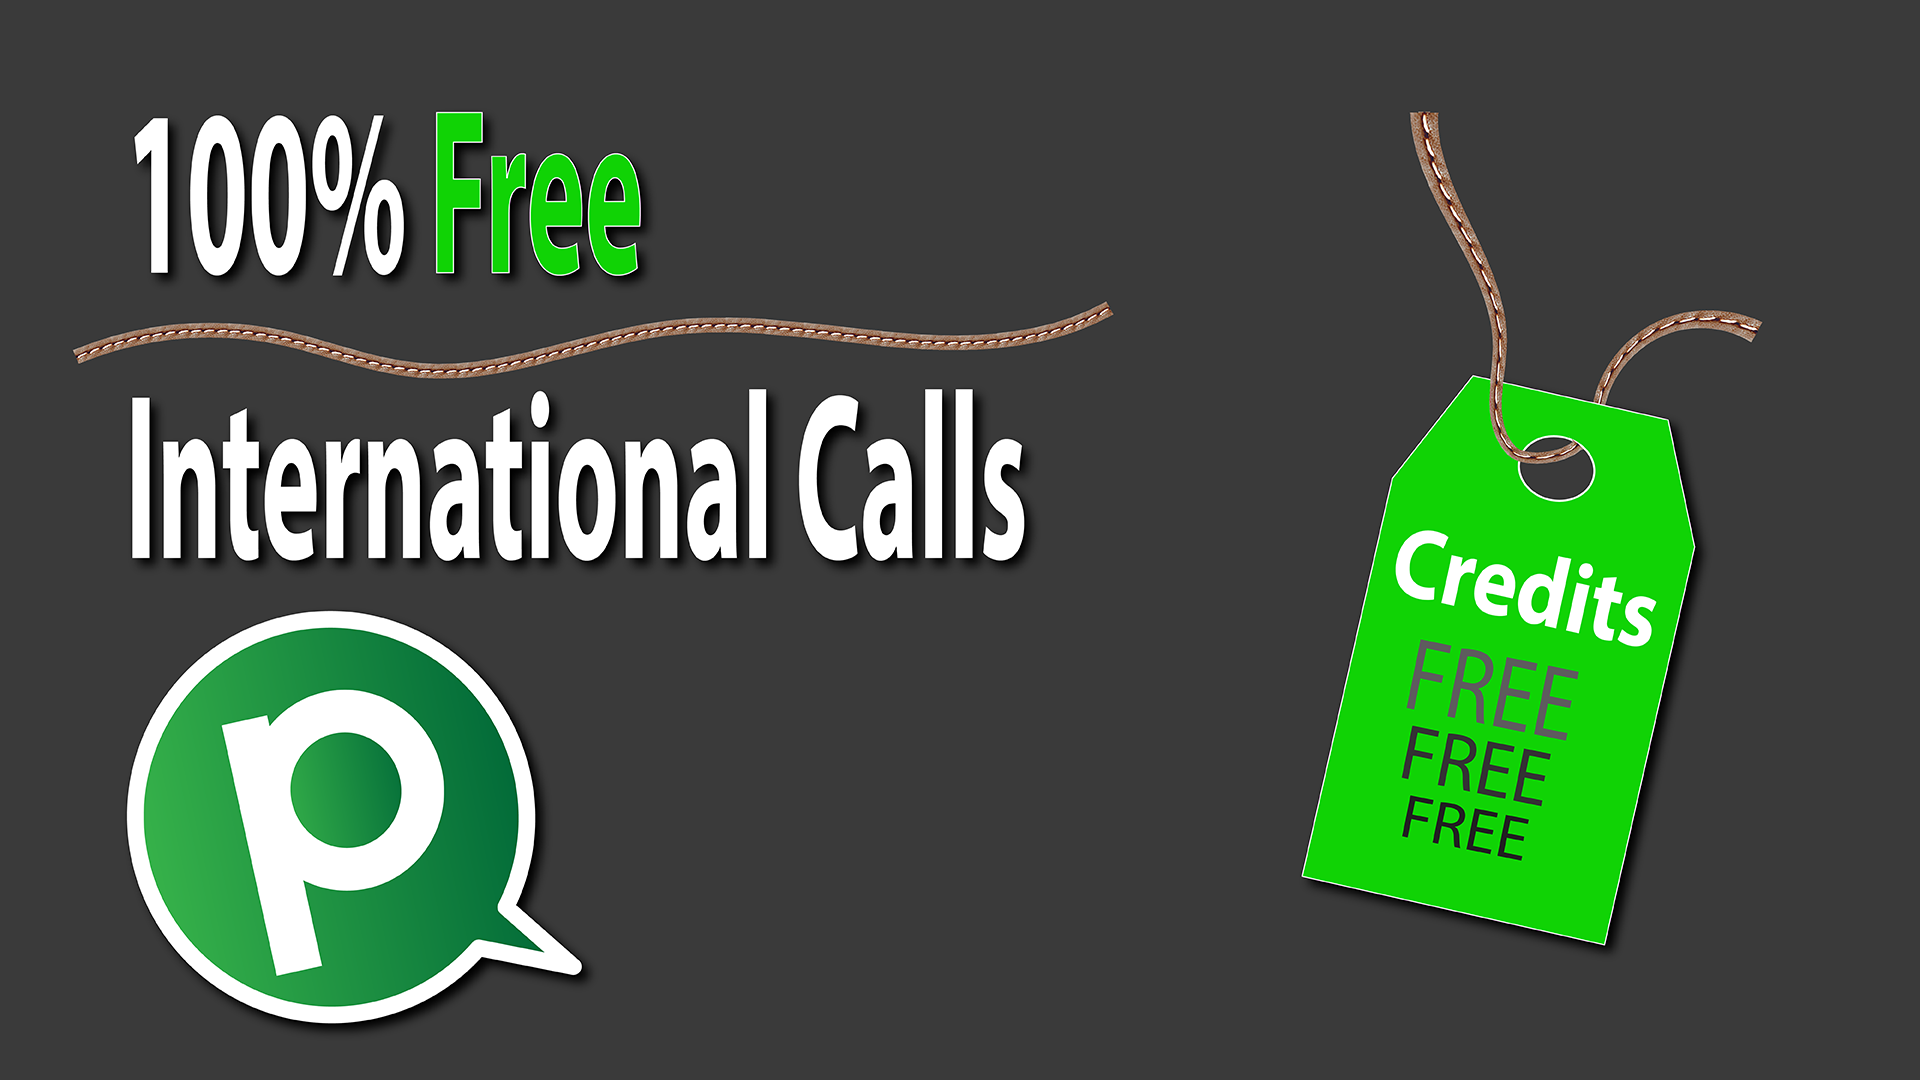 Pinngle credits for free international calls